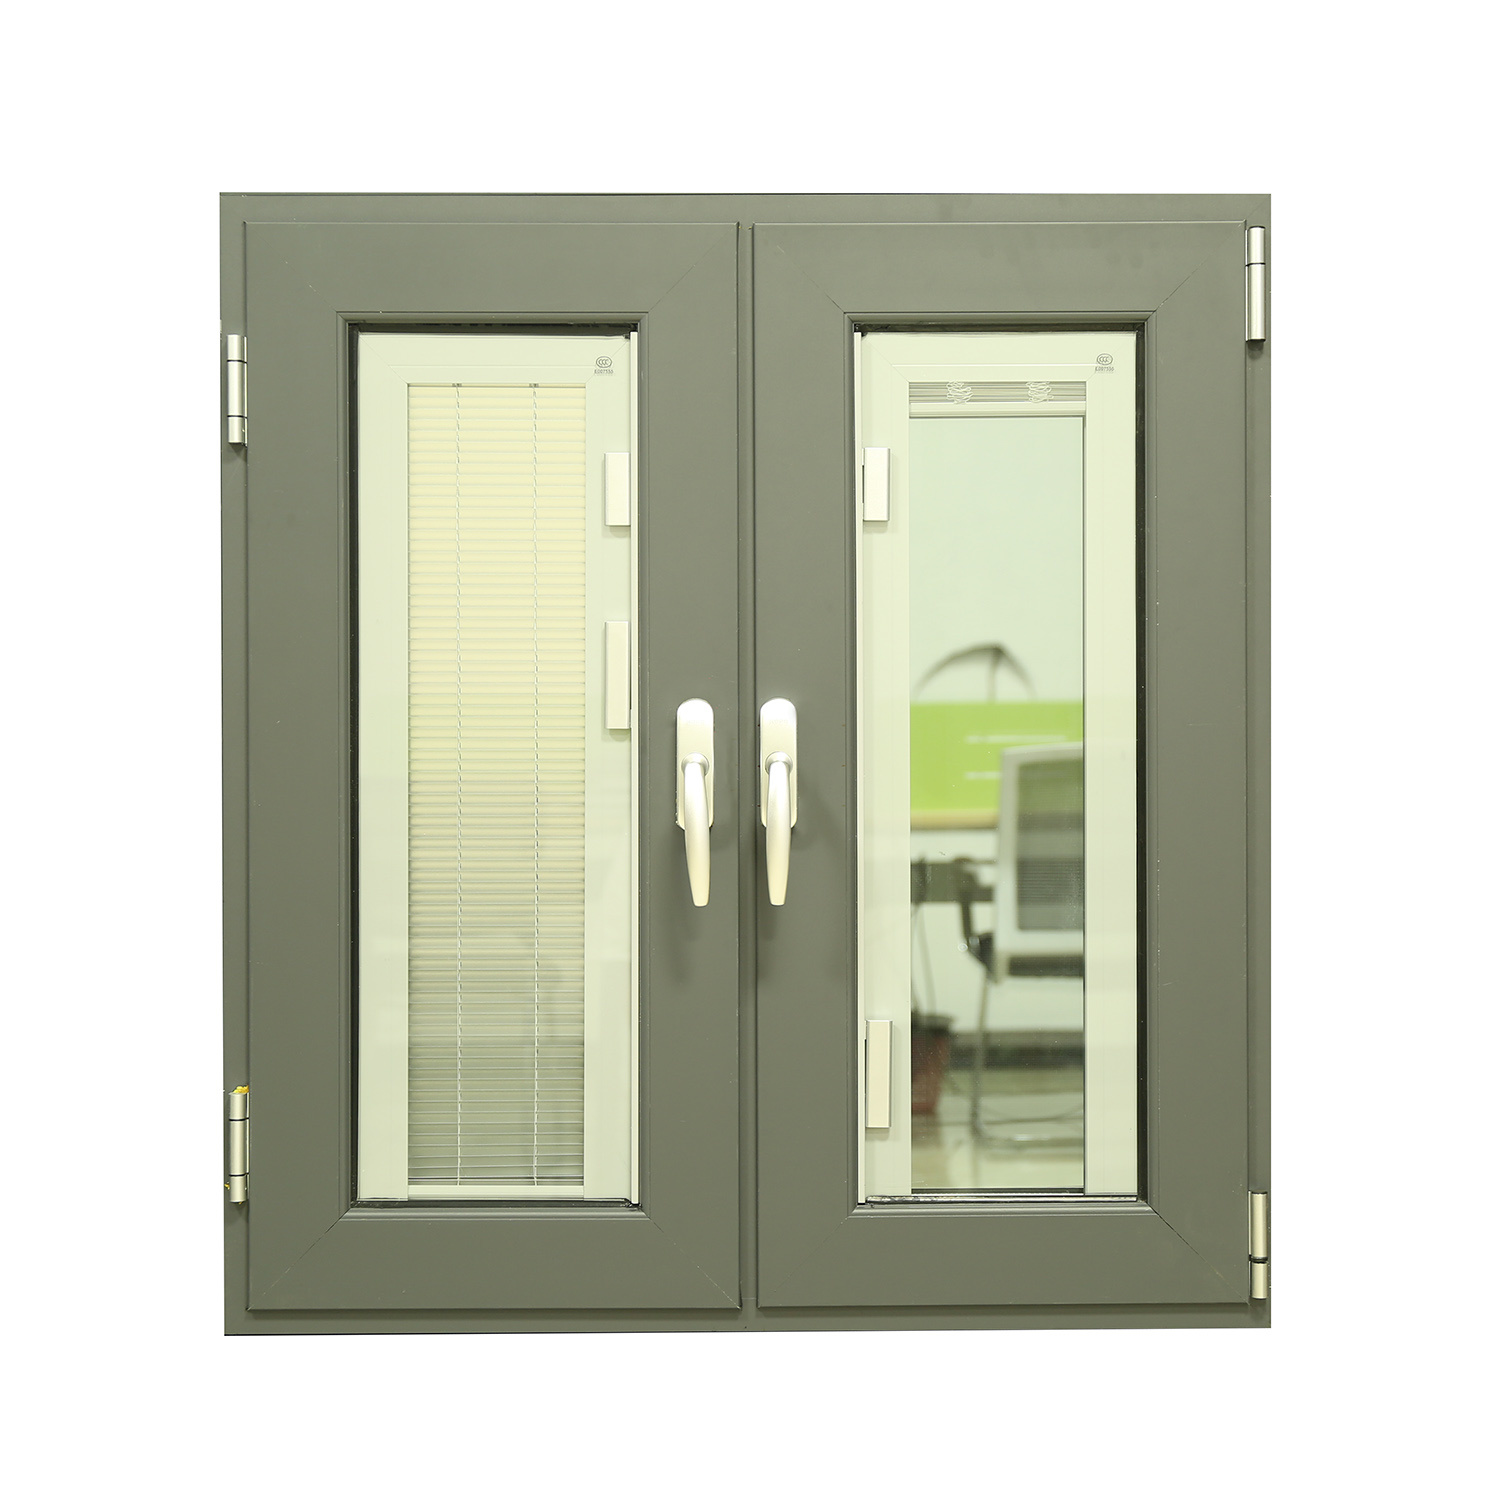 Decorative Window Film Lowes.Hot Item Aluminum Frame Window Louvre Inside Decorative Window Film Lowes